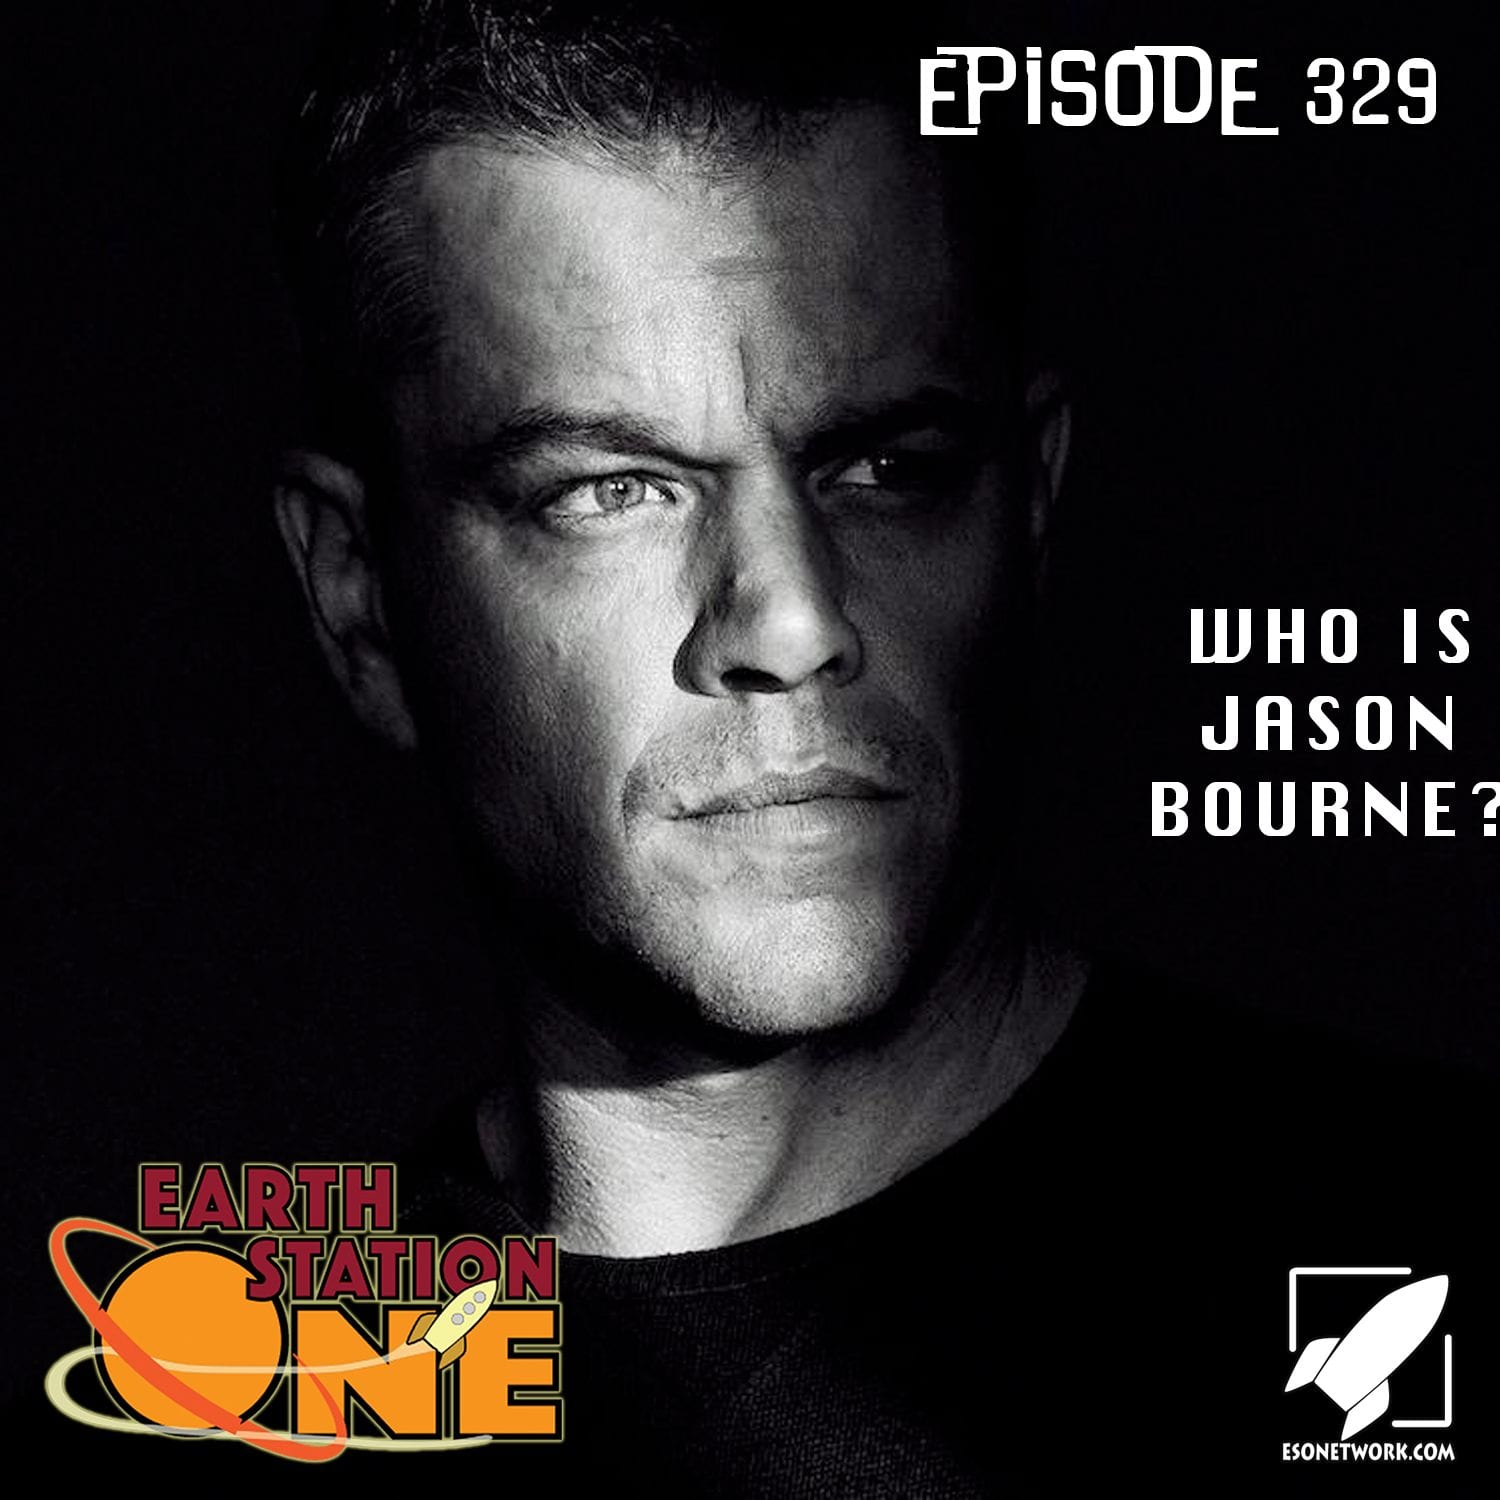 Earth Station One Episode 329